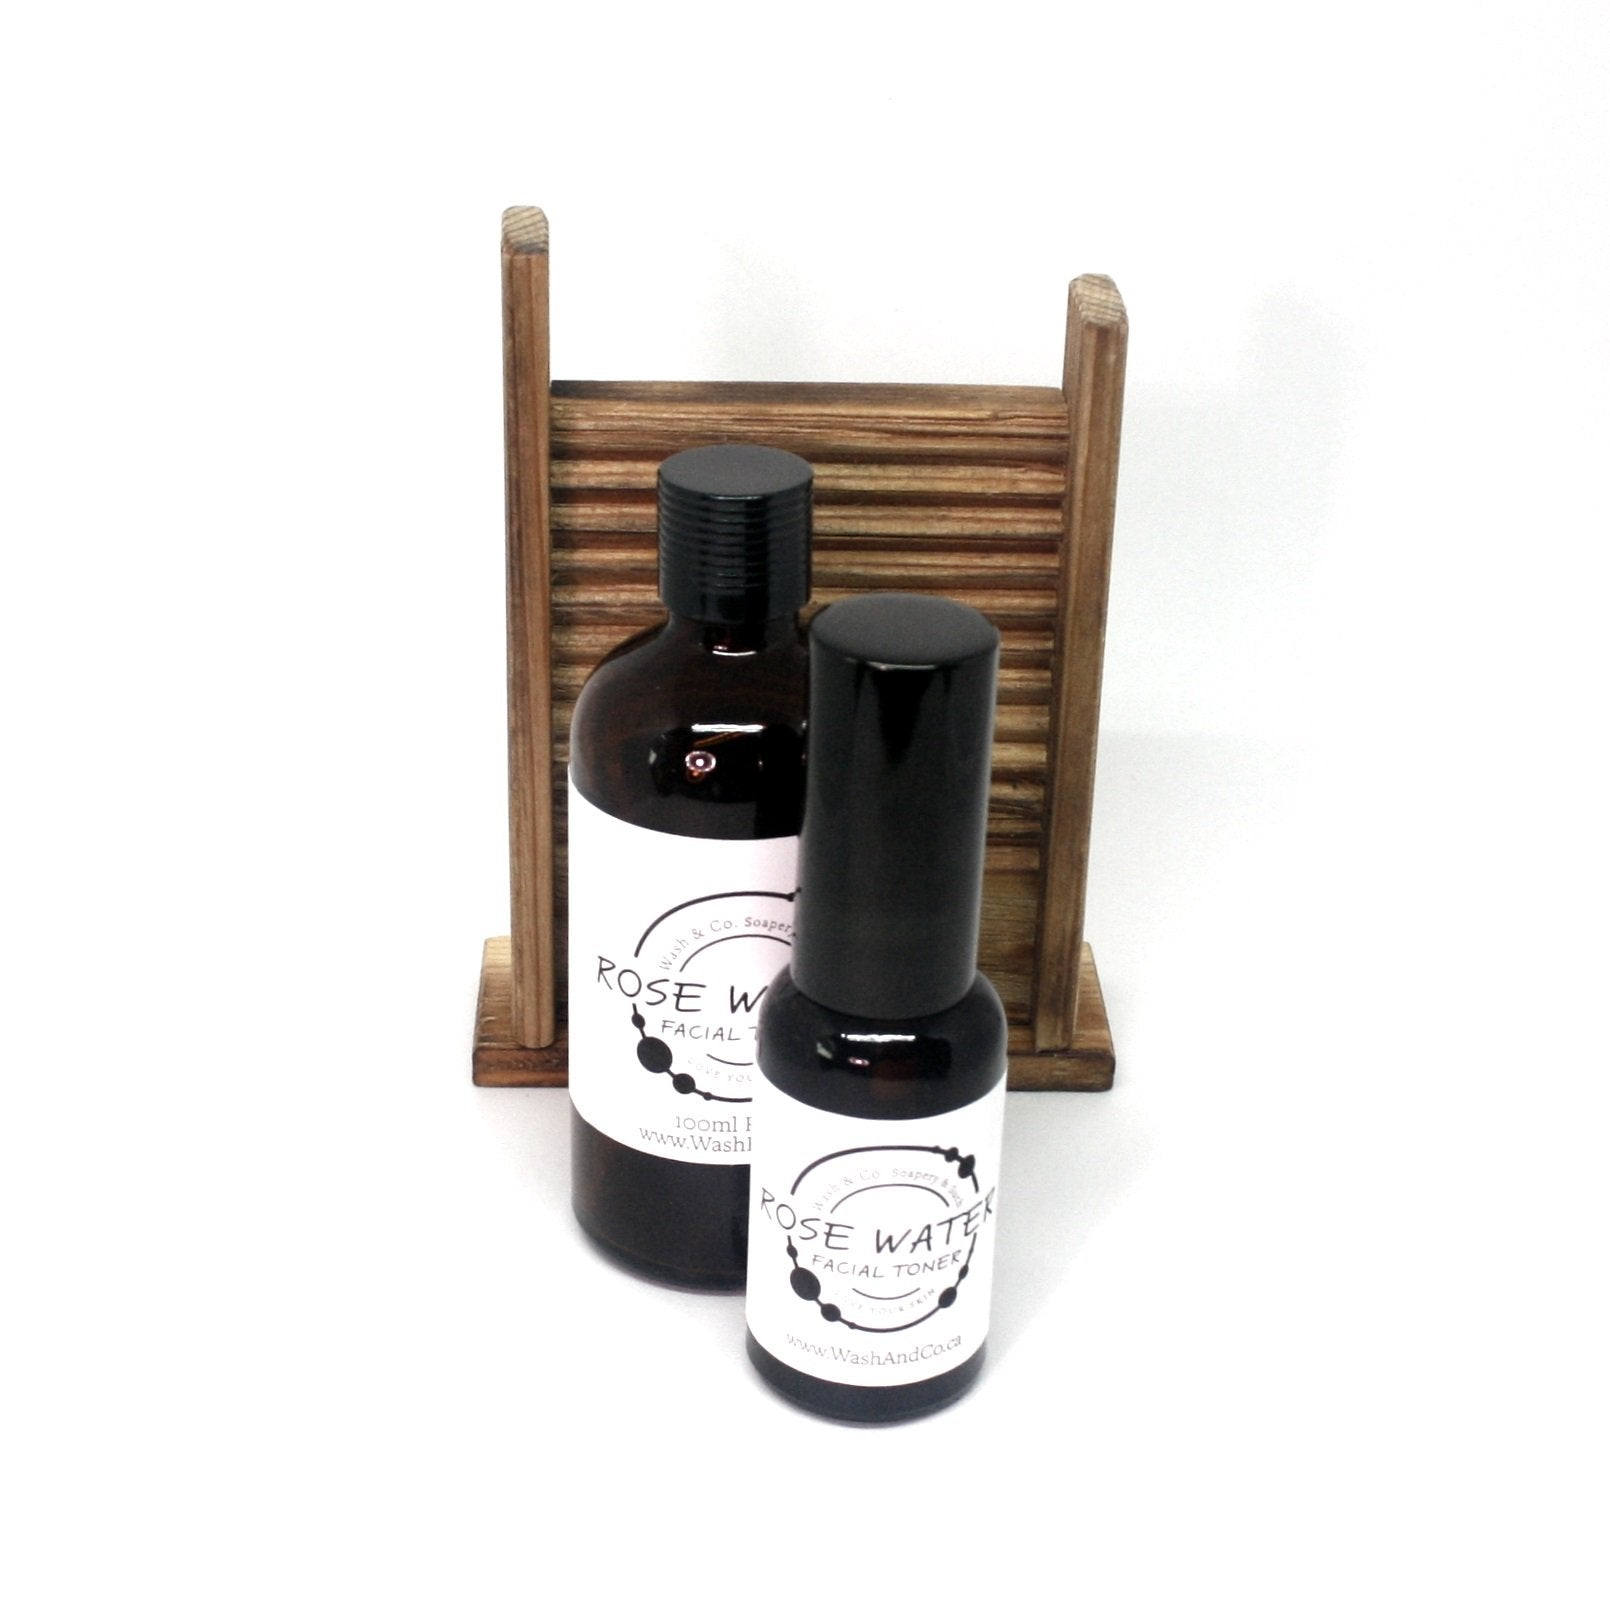 Rose Water Mist & Refill (facial toner)